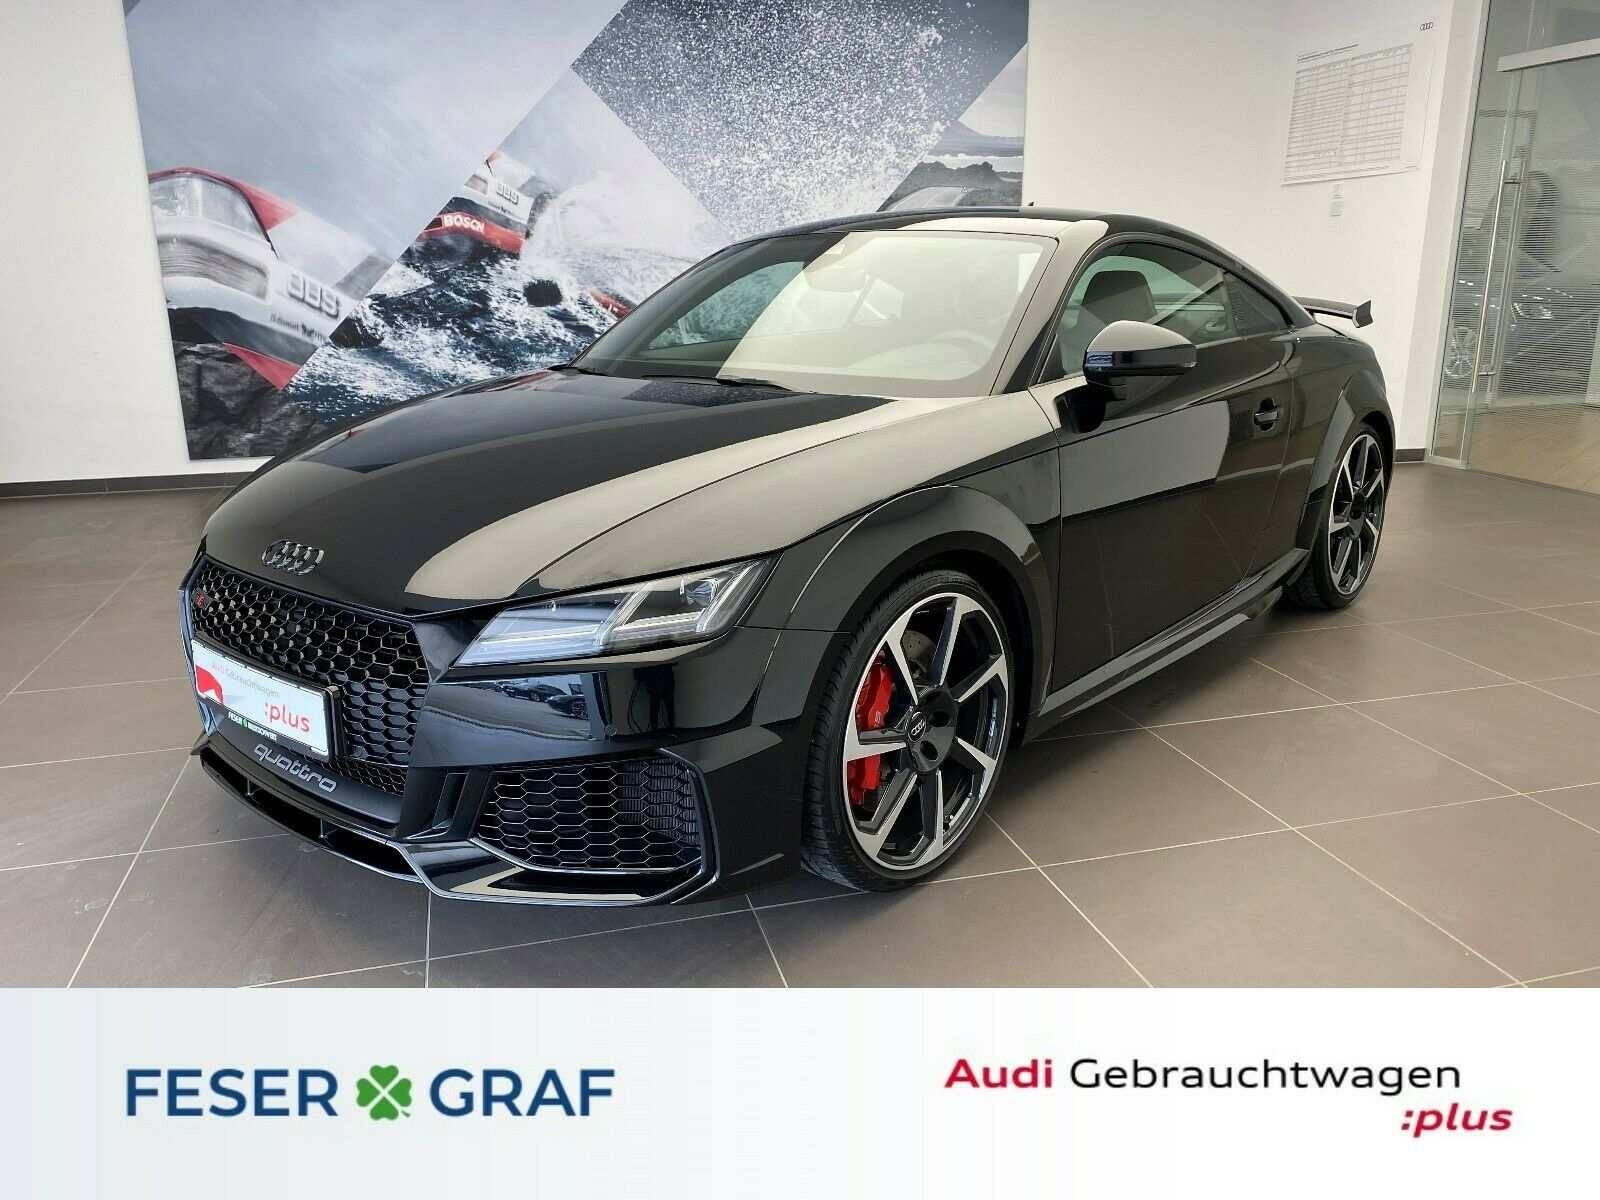 Audi TT RS 2.5 TFSI Coupe qu. -Matrix LED- SPORTABGAS, Jahr 2019, Benzin